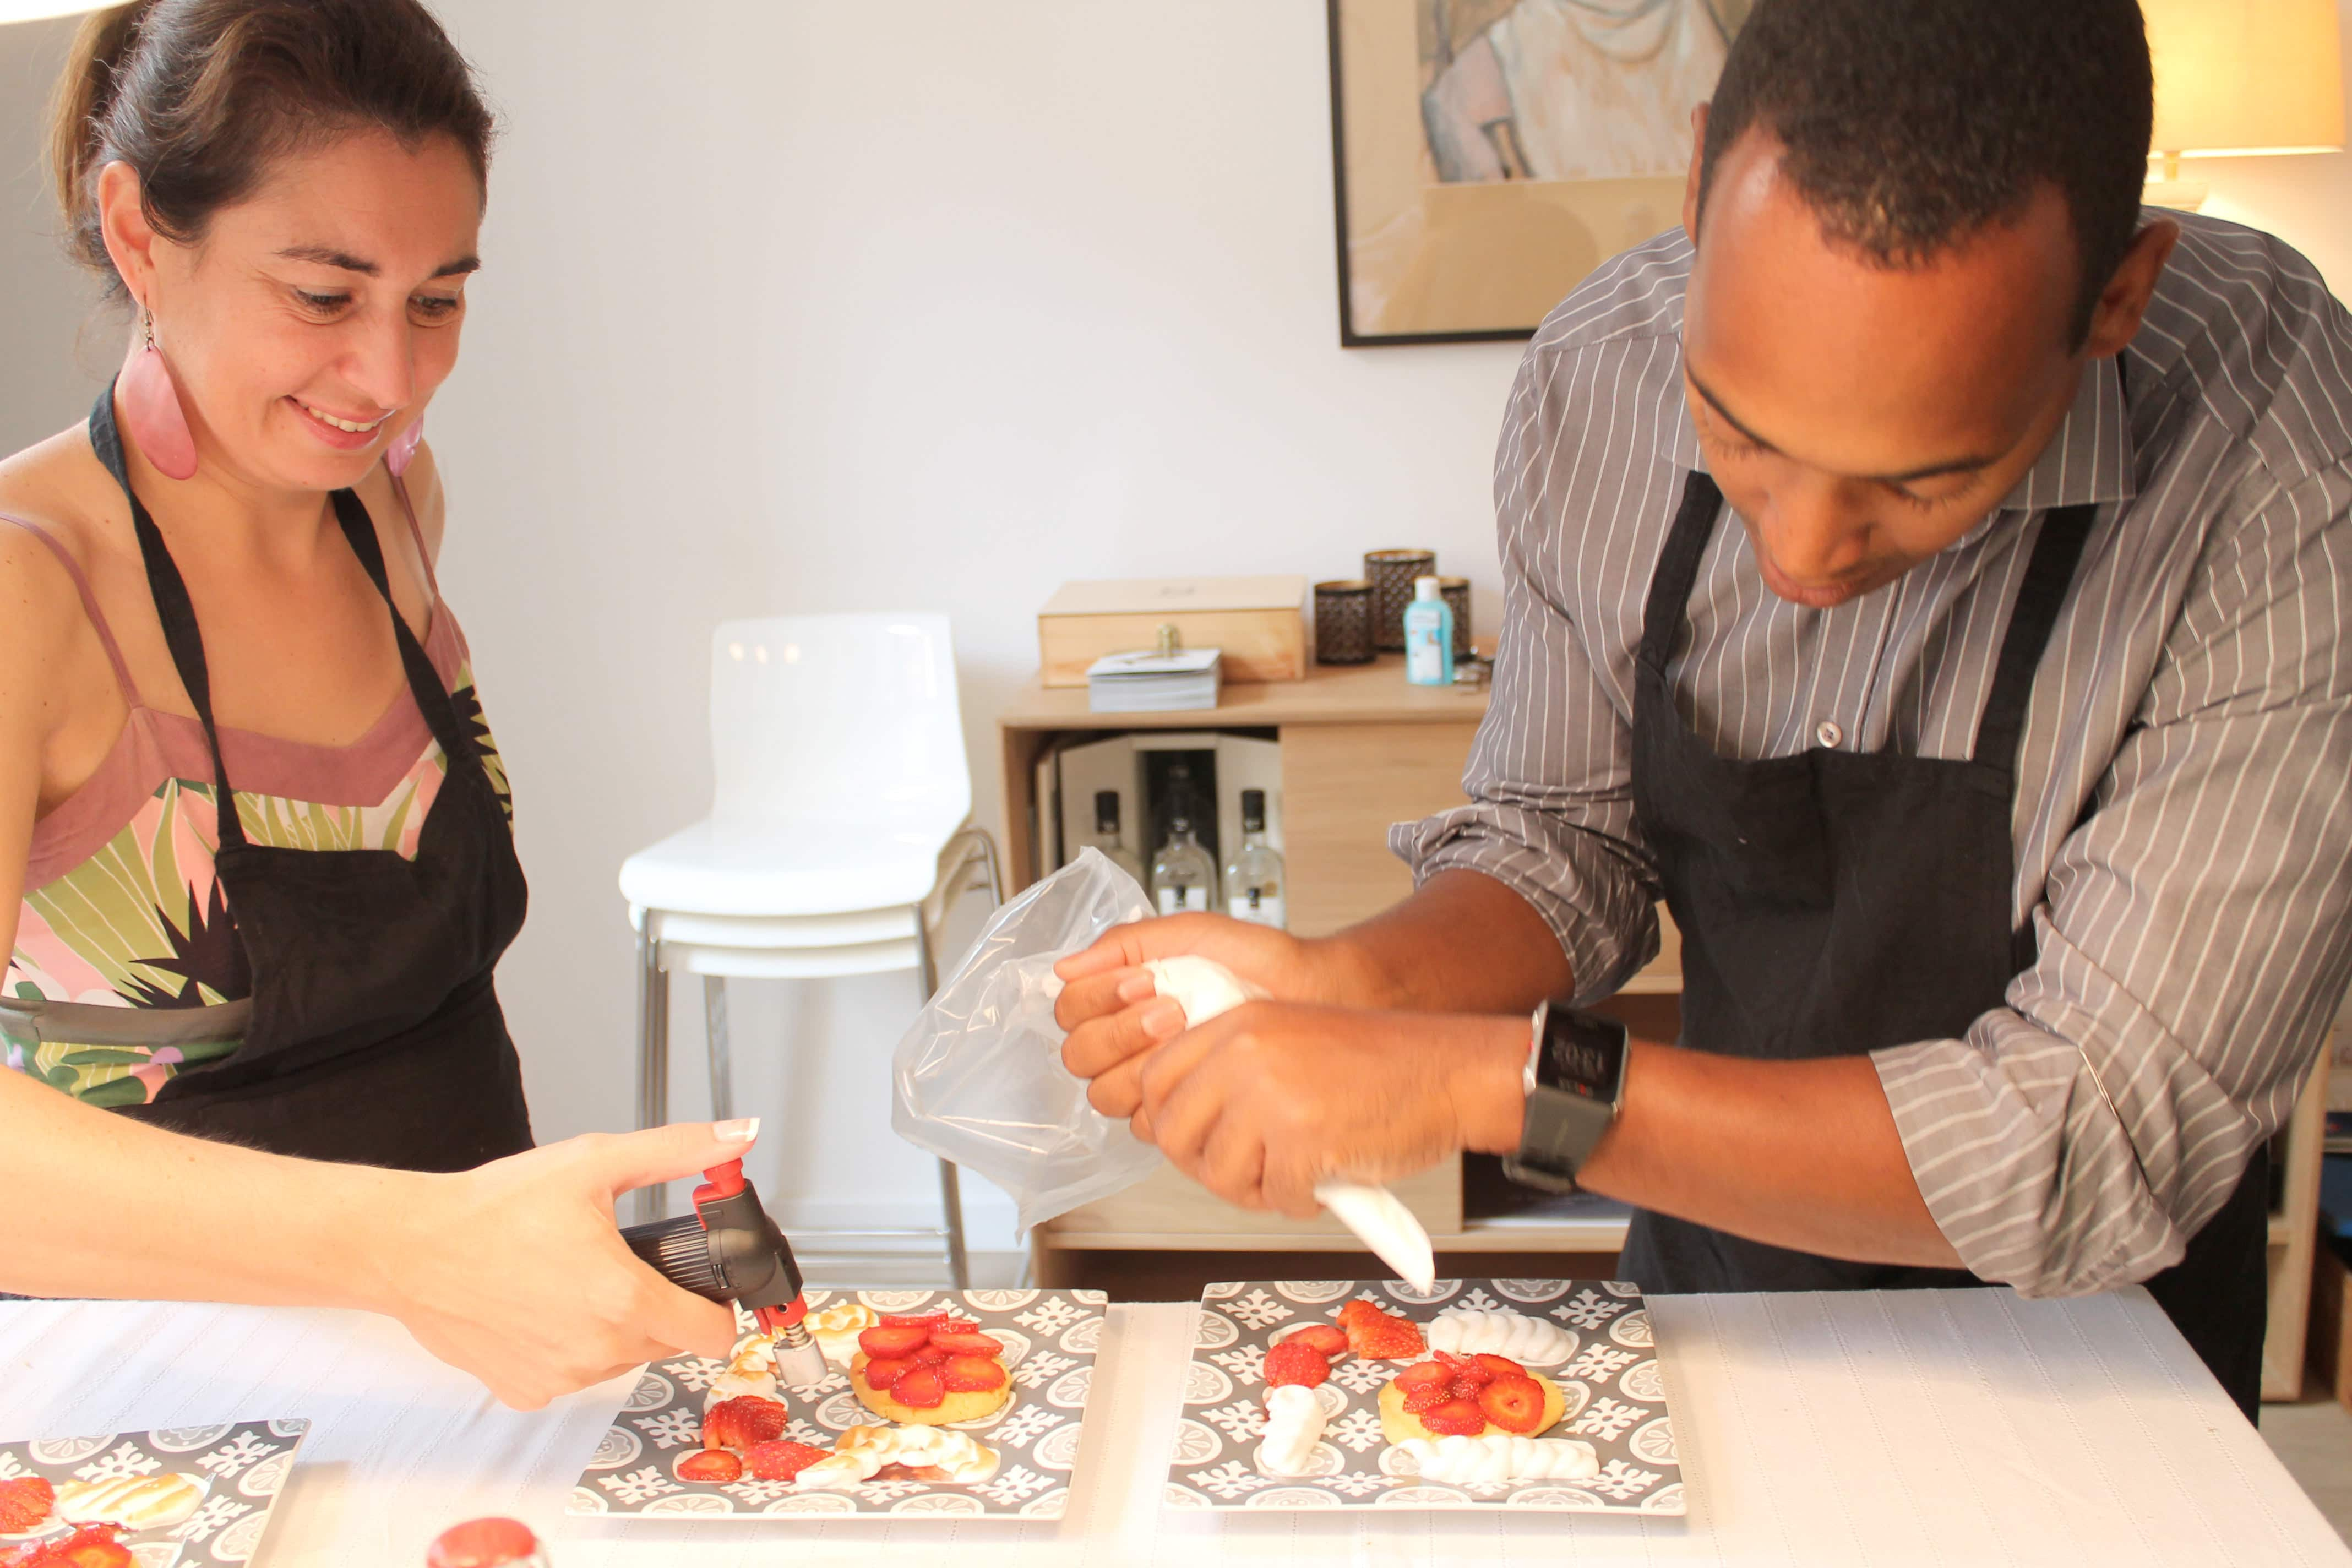 Wine and cooking class, platting strawberry tarts